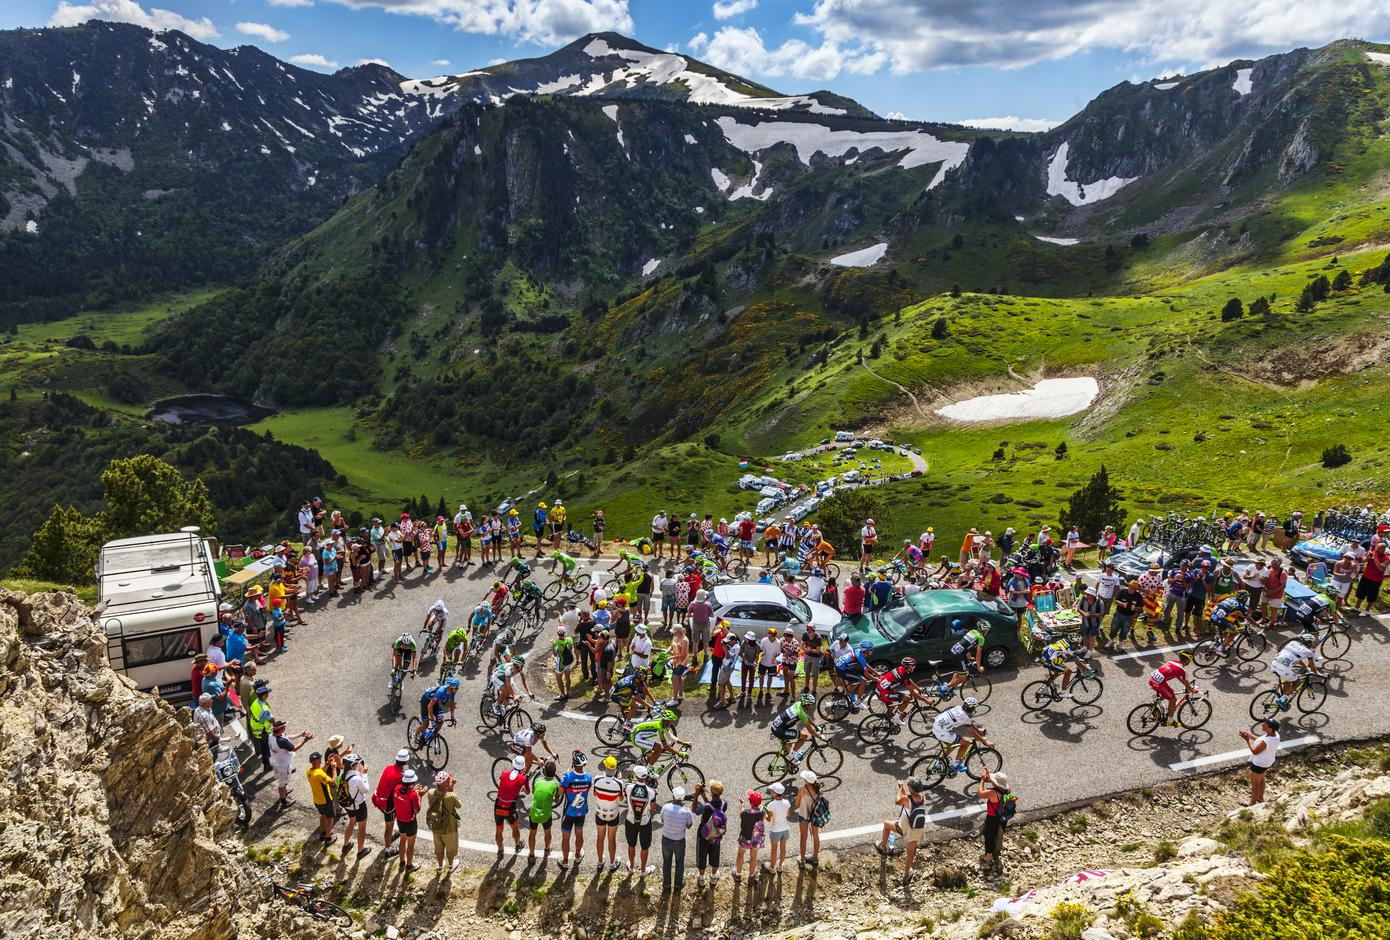 The peloton climbing the road to Col de Pailheres in Pyrenees Mountains during the stage 8 of Tour de France, 2013.